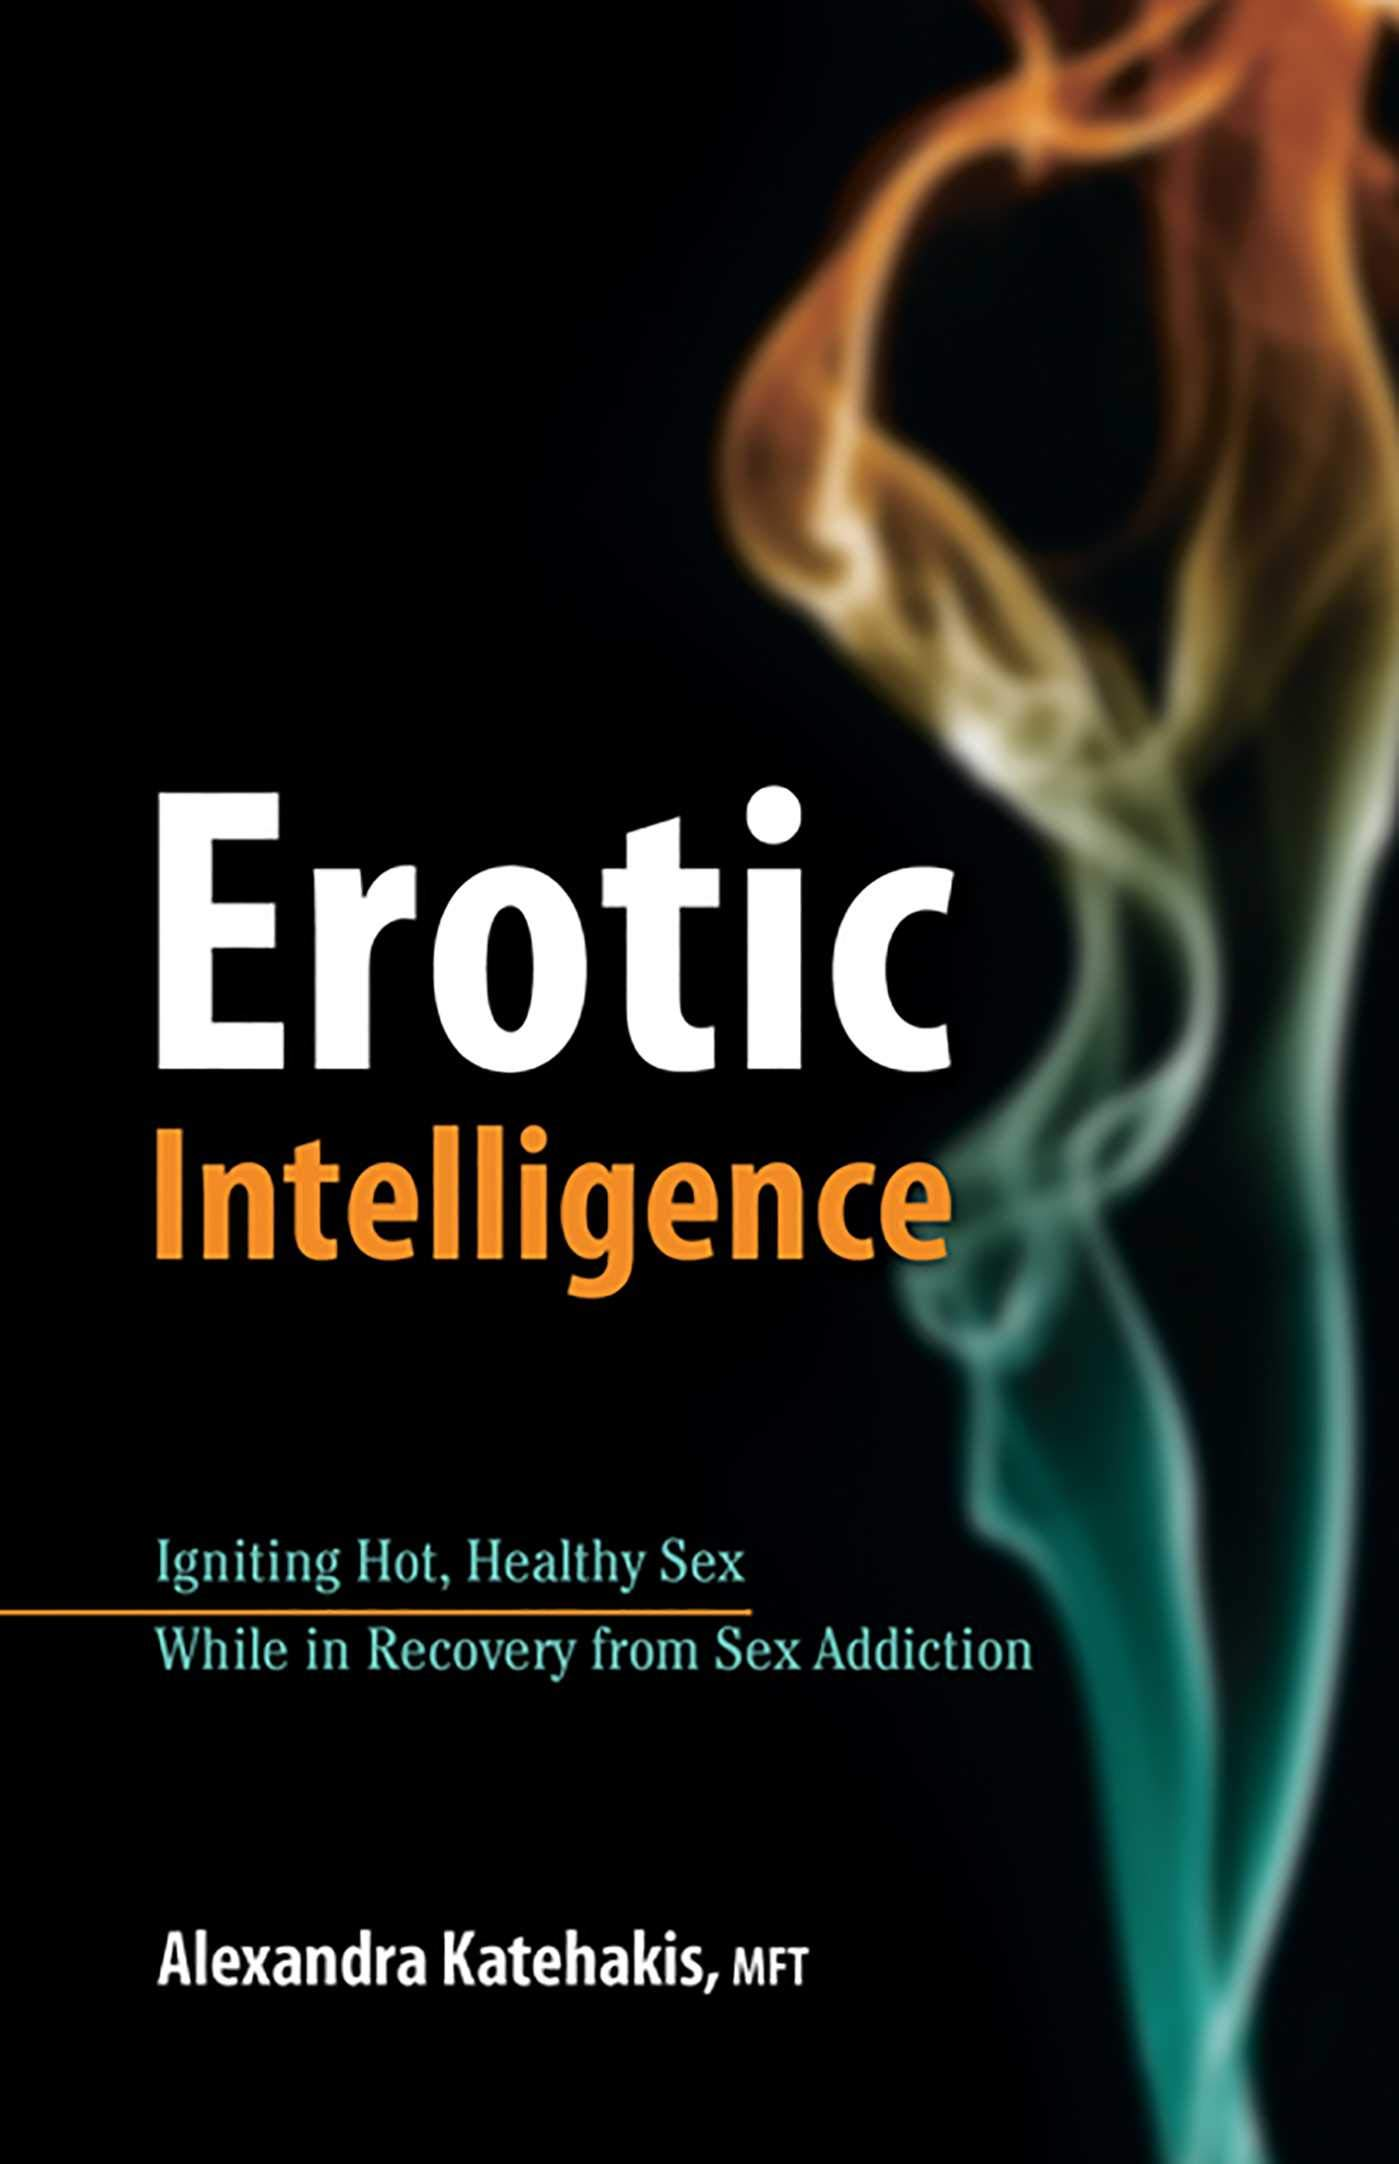 Partners sex addicts speak out self care personal